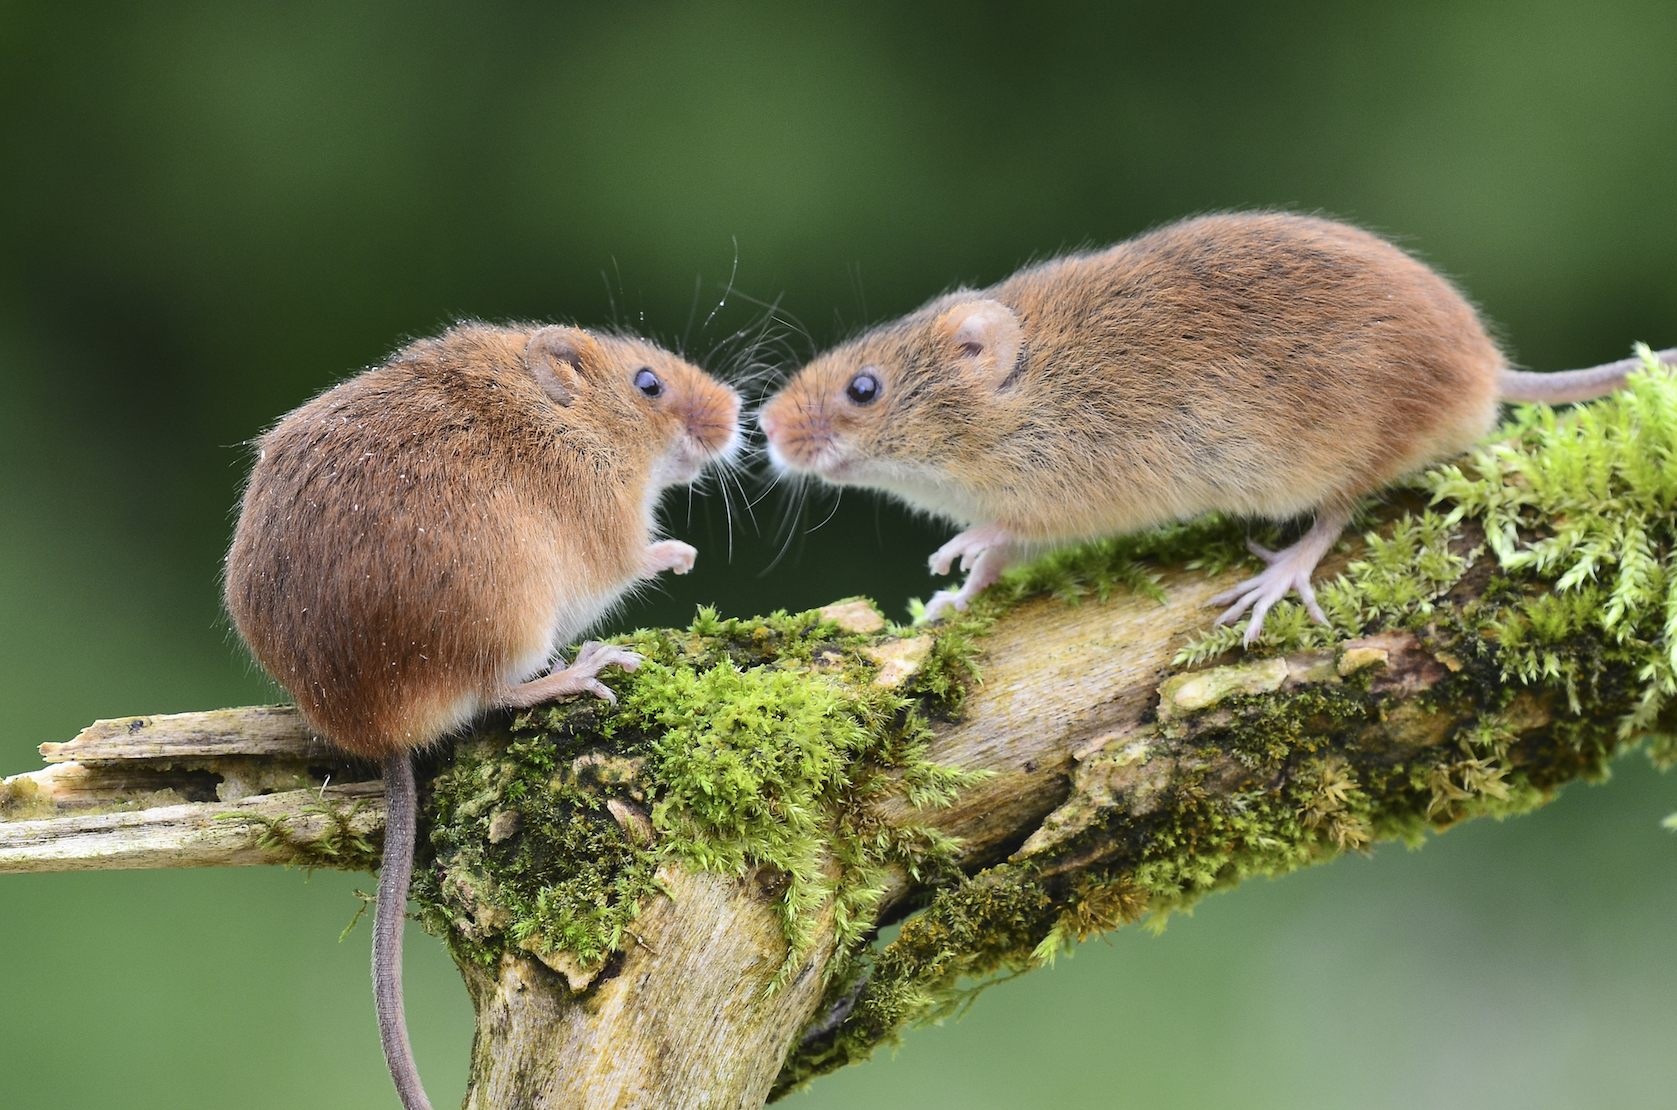 A male pheromone in mice enhances sexual behaviors in females, and may trigger aggression in males, a new study says.